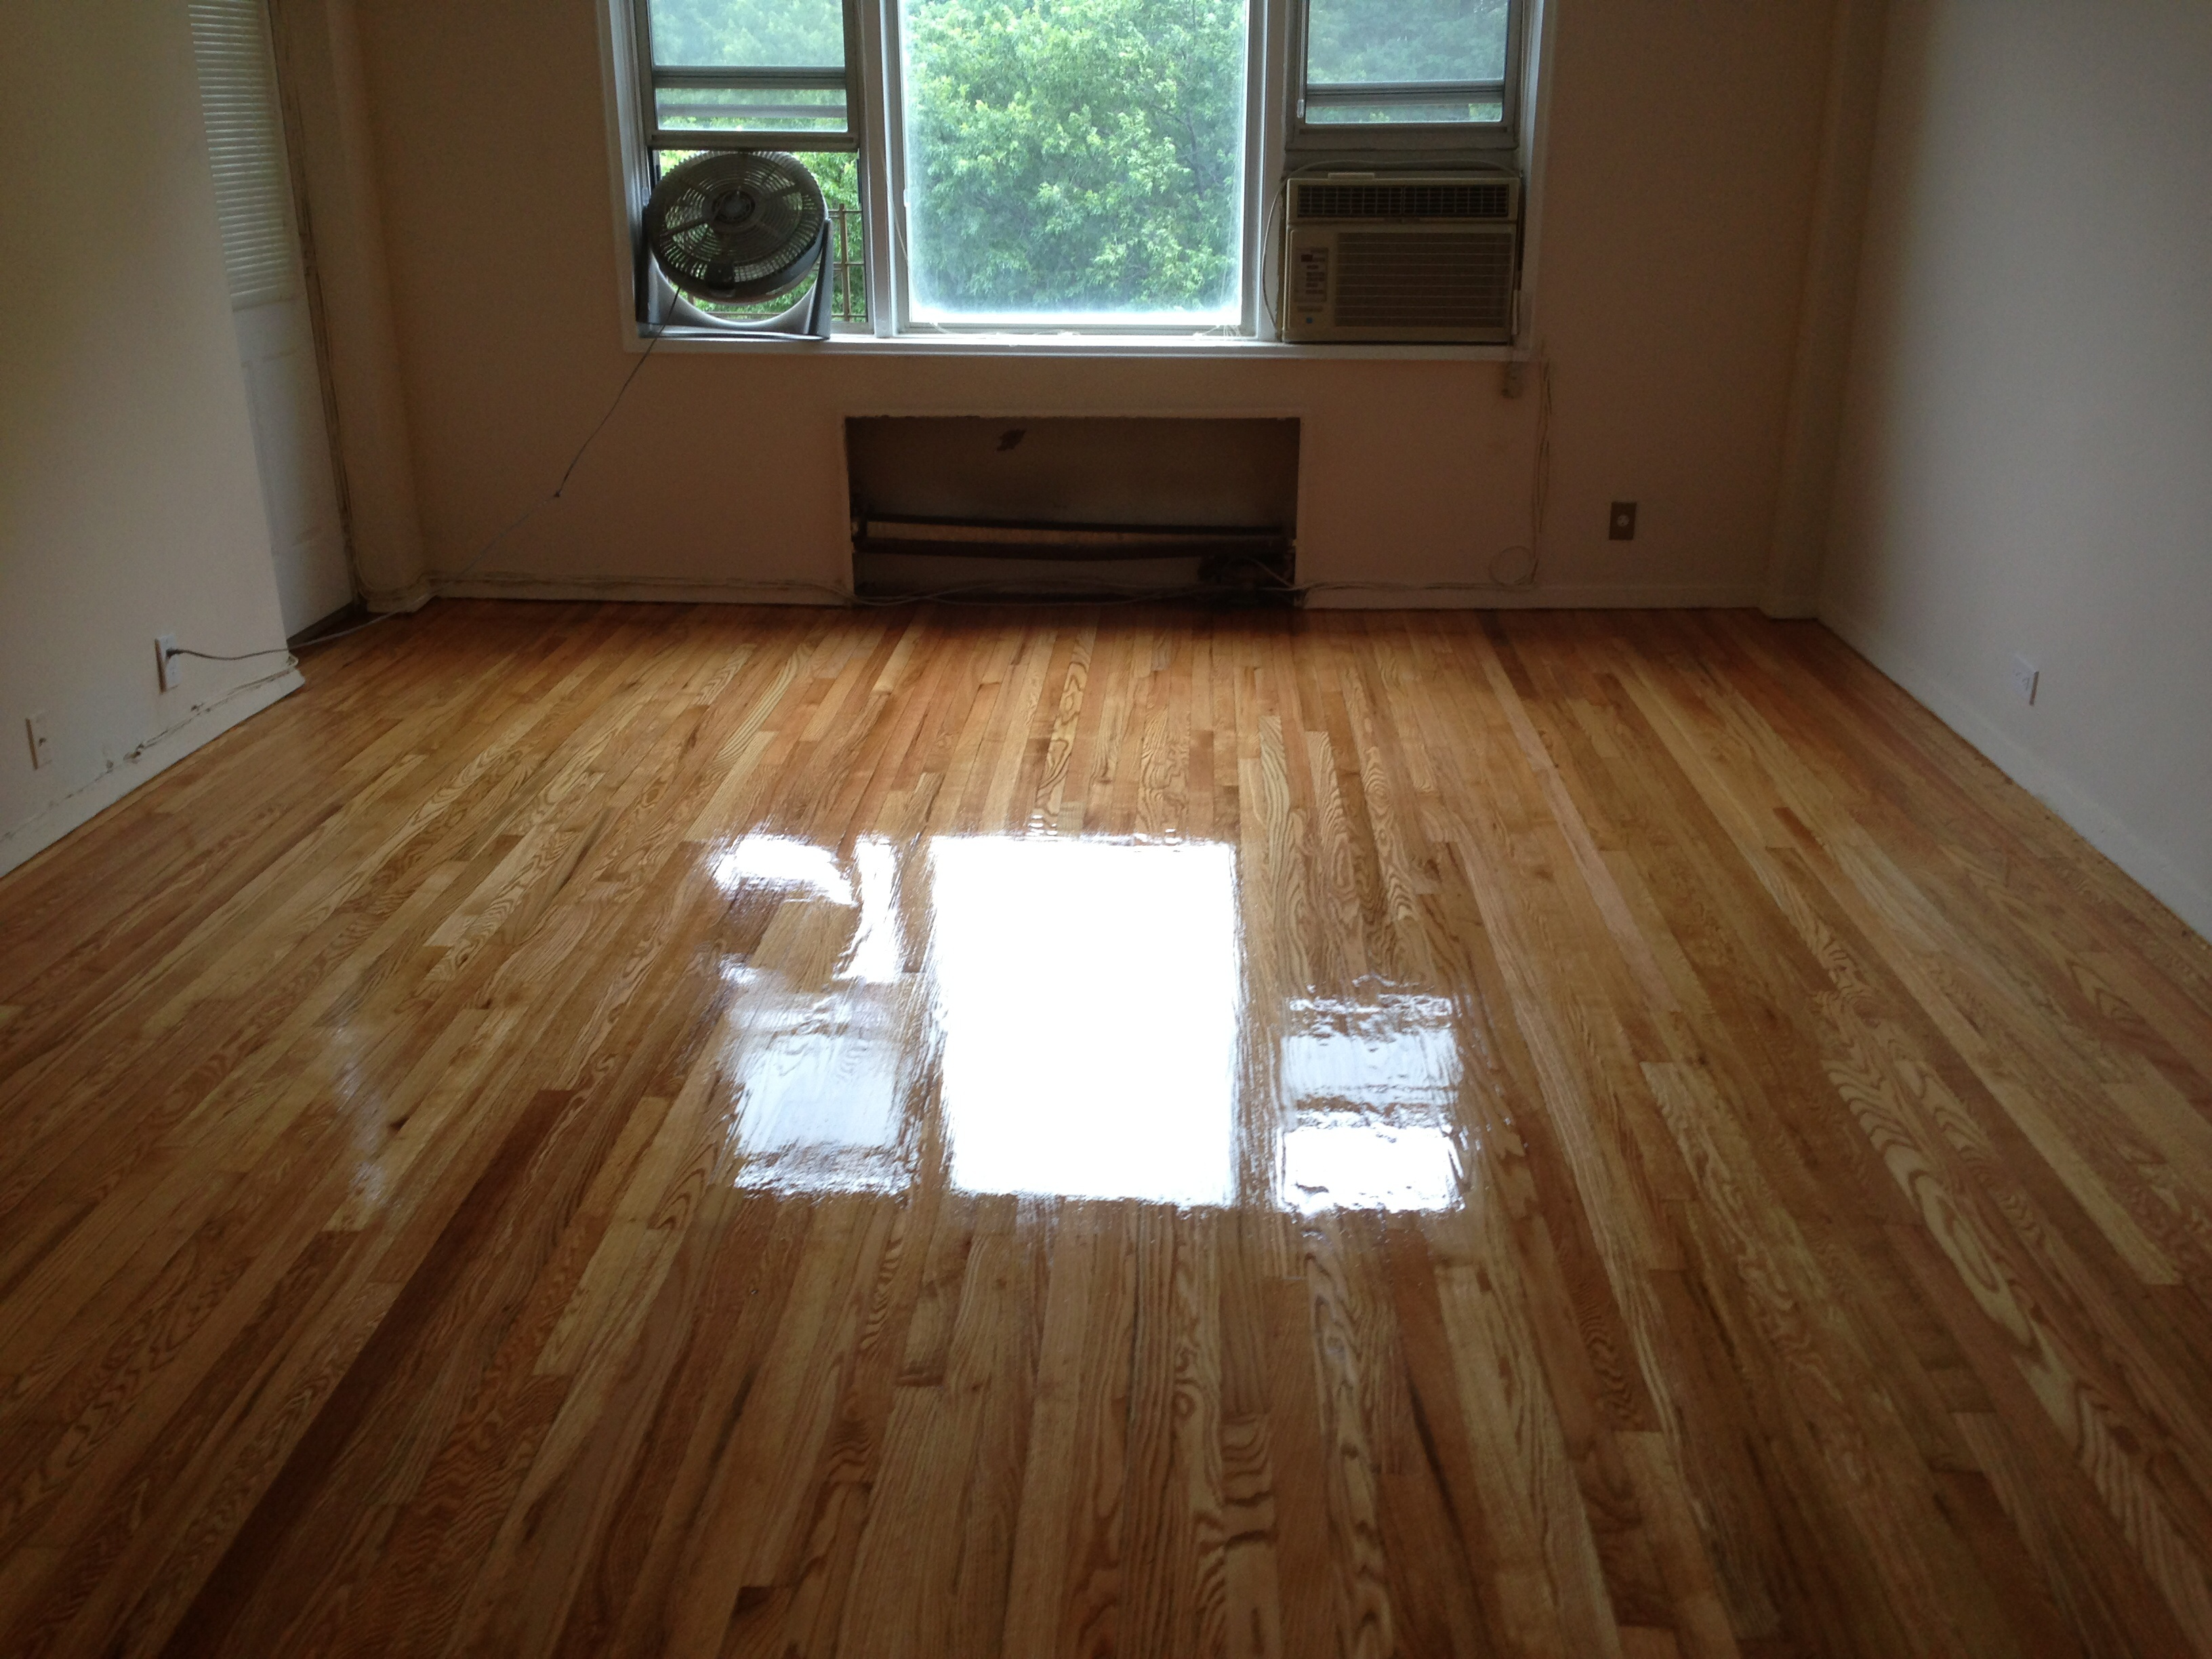 franks floors and refinishing bronx new york ny